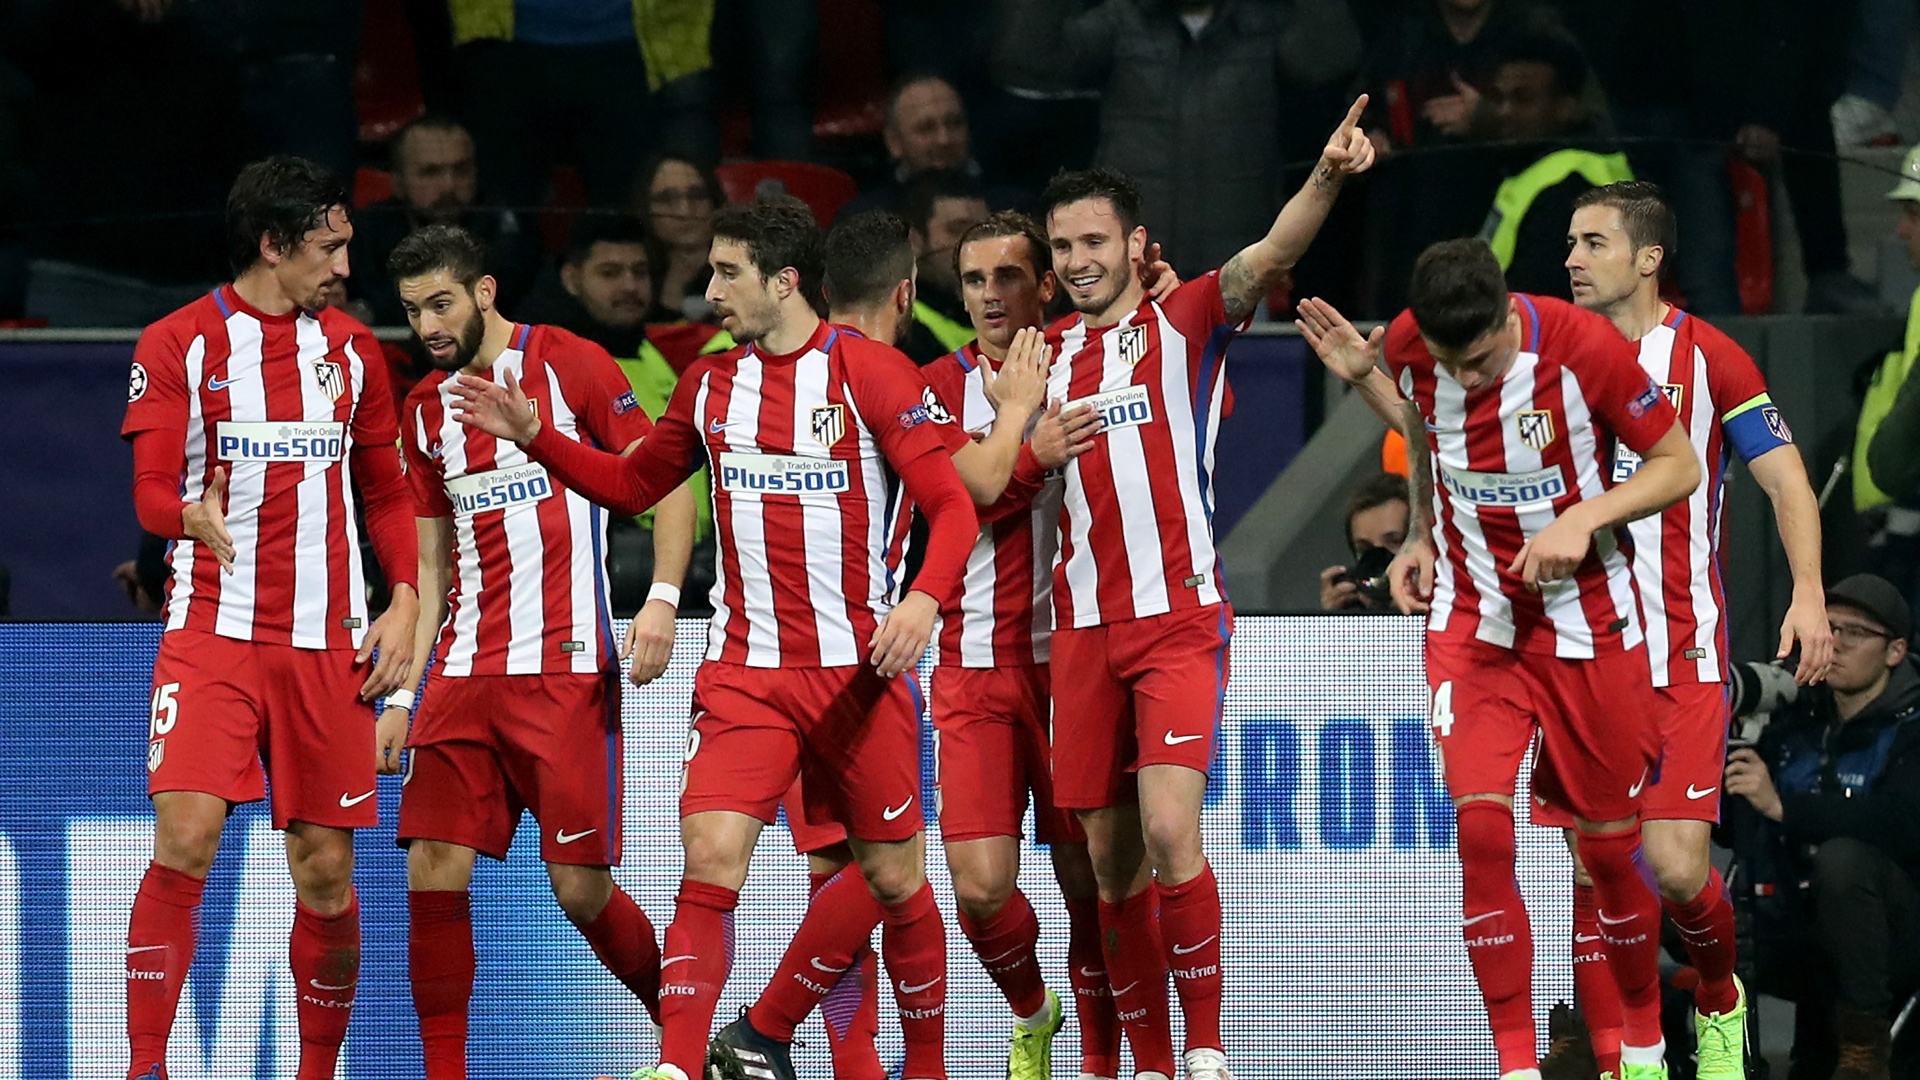 Griez lightning atletico madrid 39 s journey to the last 16 for Exterior atletico de madrid